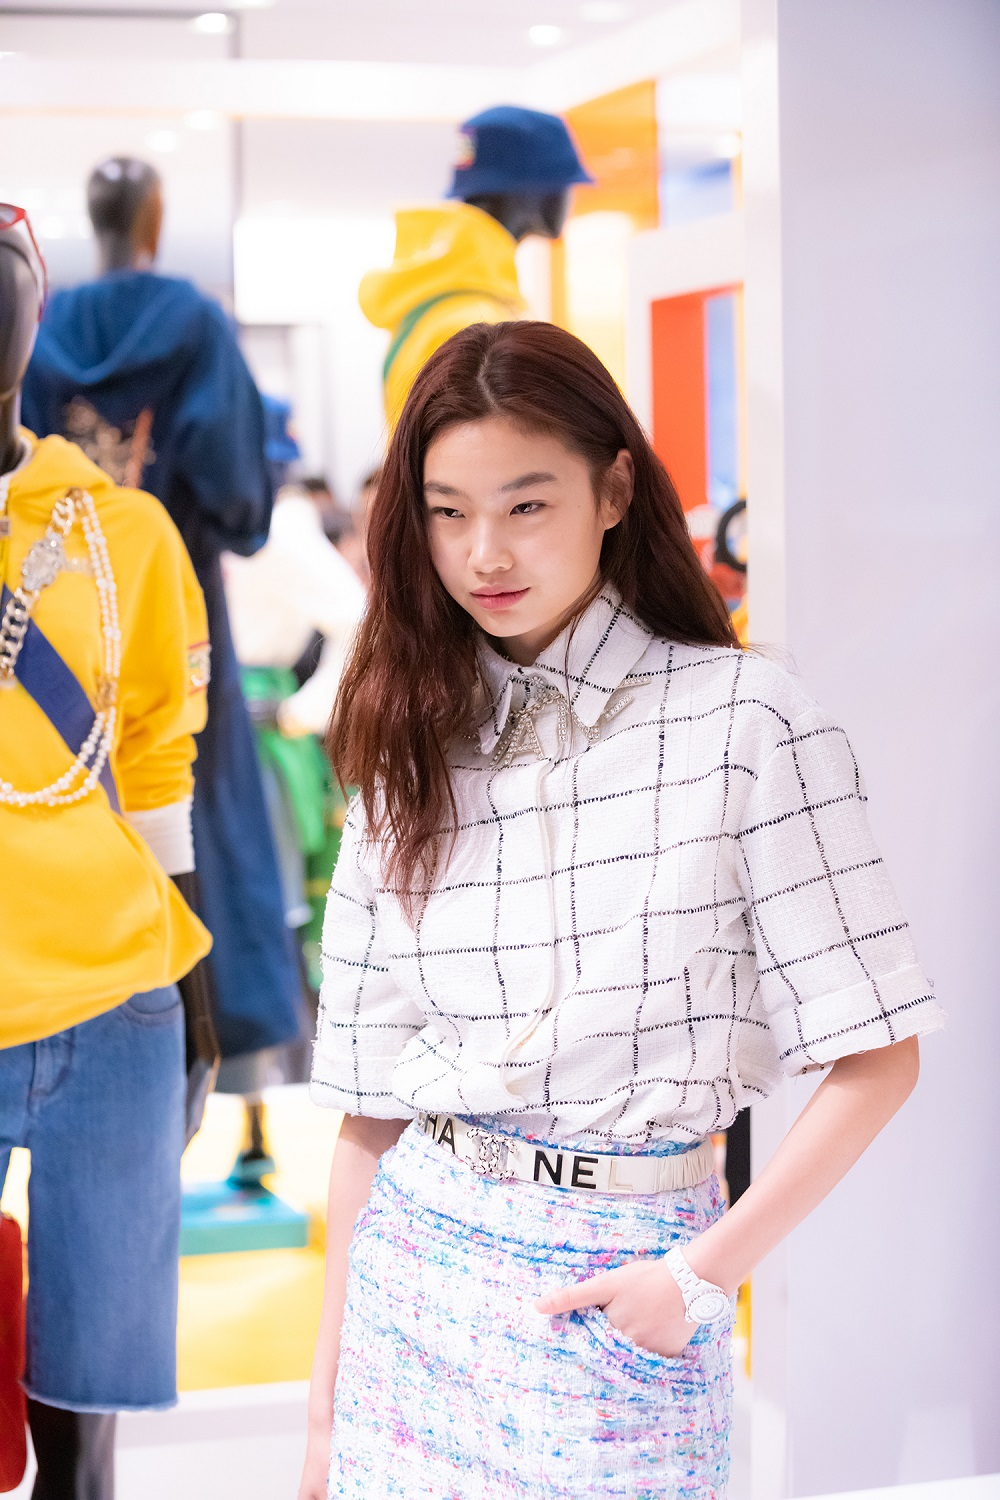 Hoyeon Jung wore a black and white striped tweed blouse and tweed skirt (look 14 from the Spring-Summer 2019 Ready-to-Wear collection), CHANEL accessories, bag and shoes. She also wore